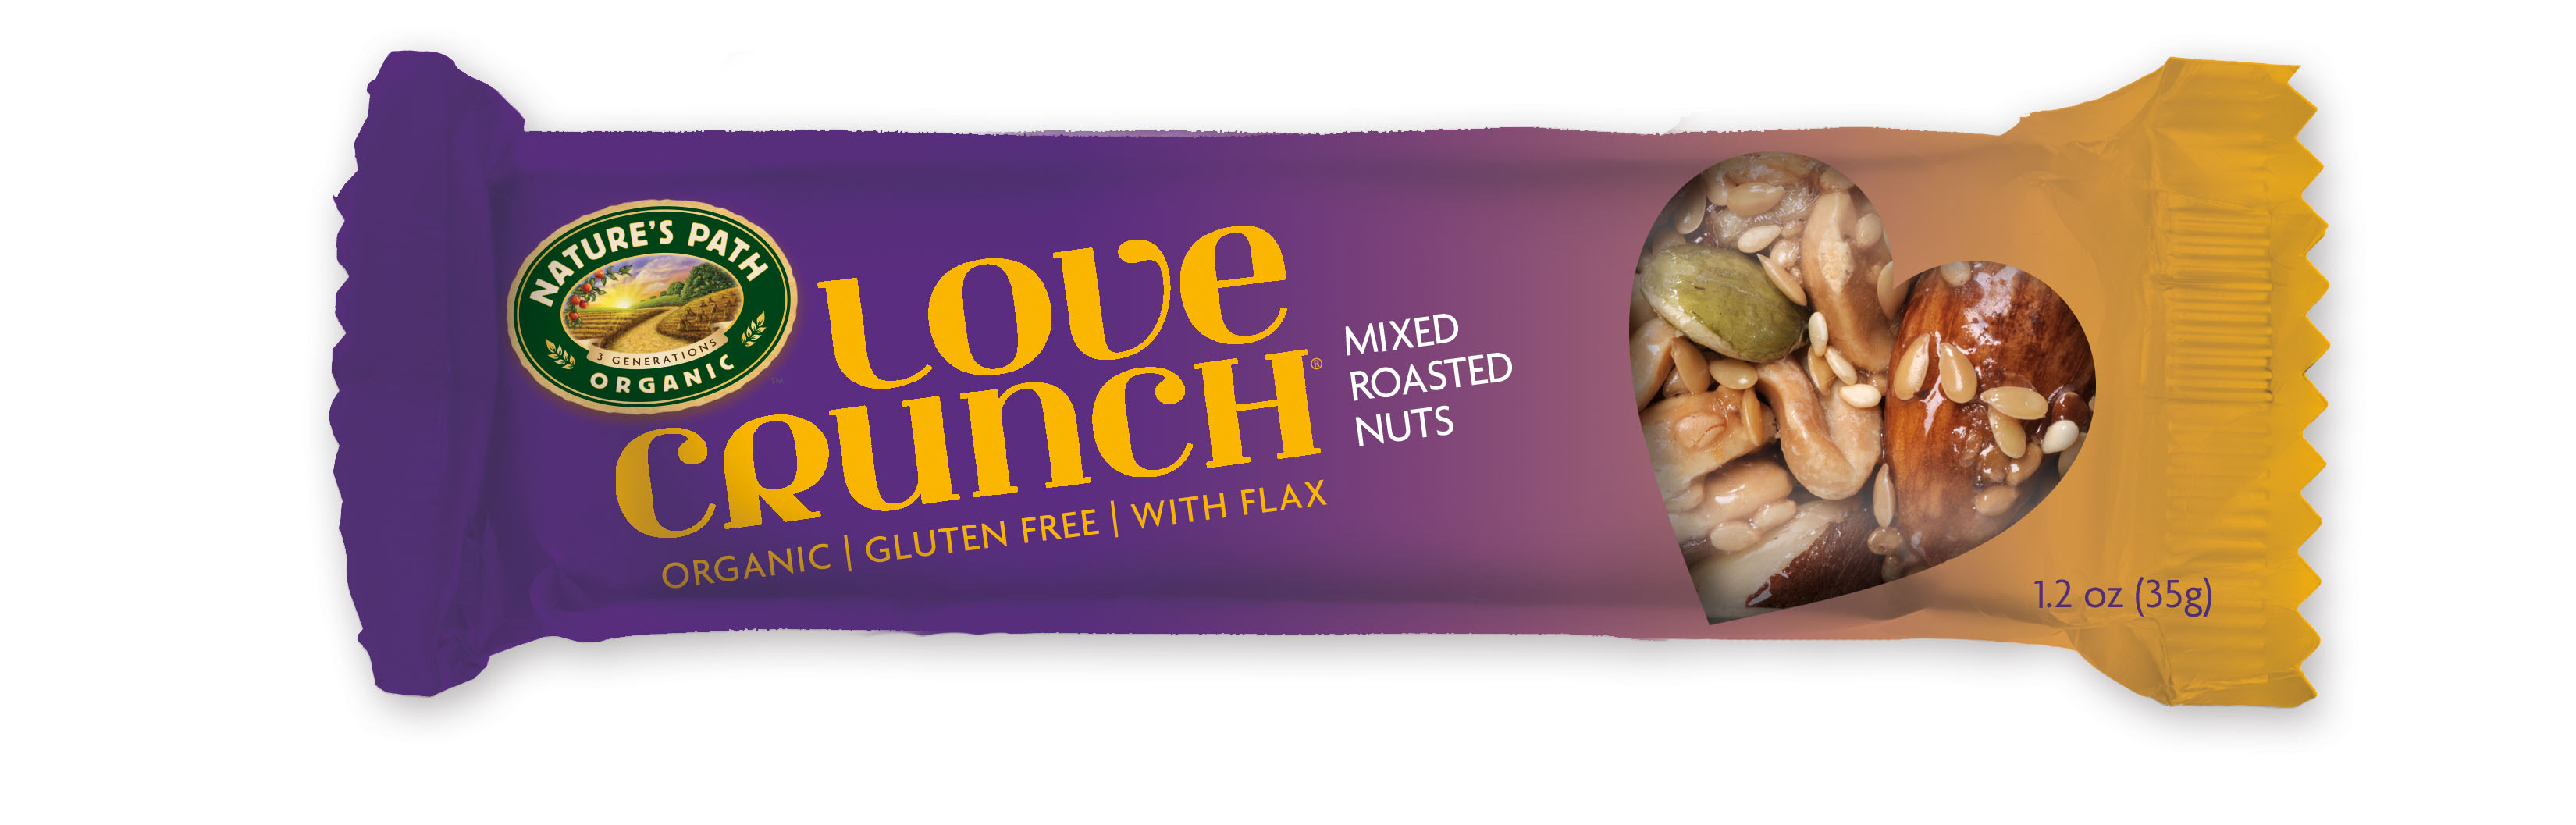 Nature's Path Love Crunch Bar Mixed Roasted Nuts is a Hit